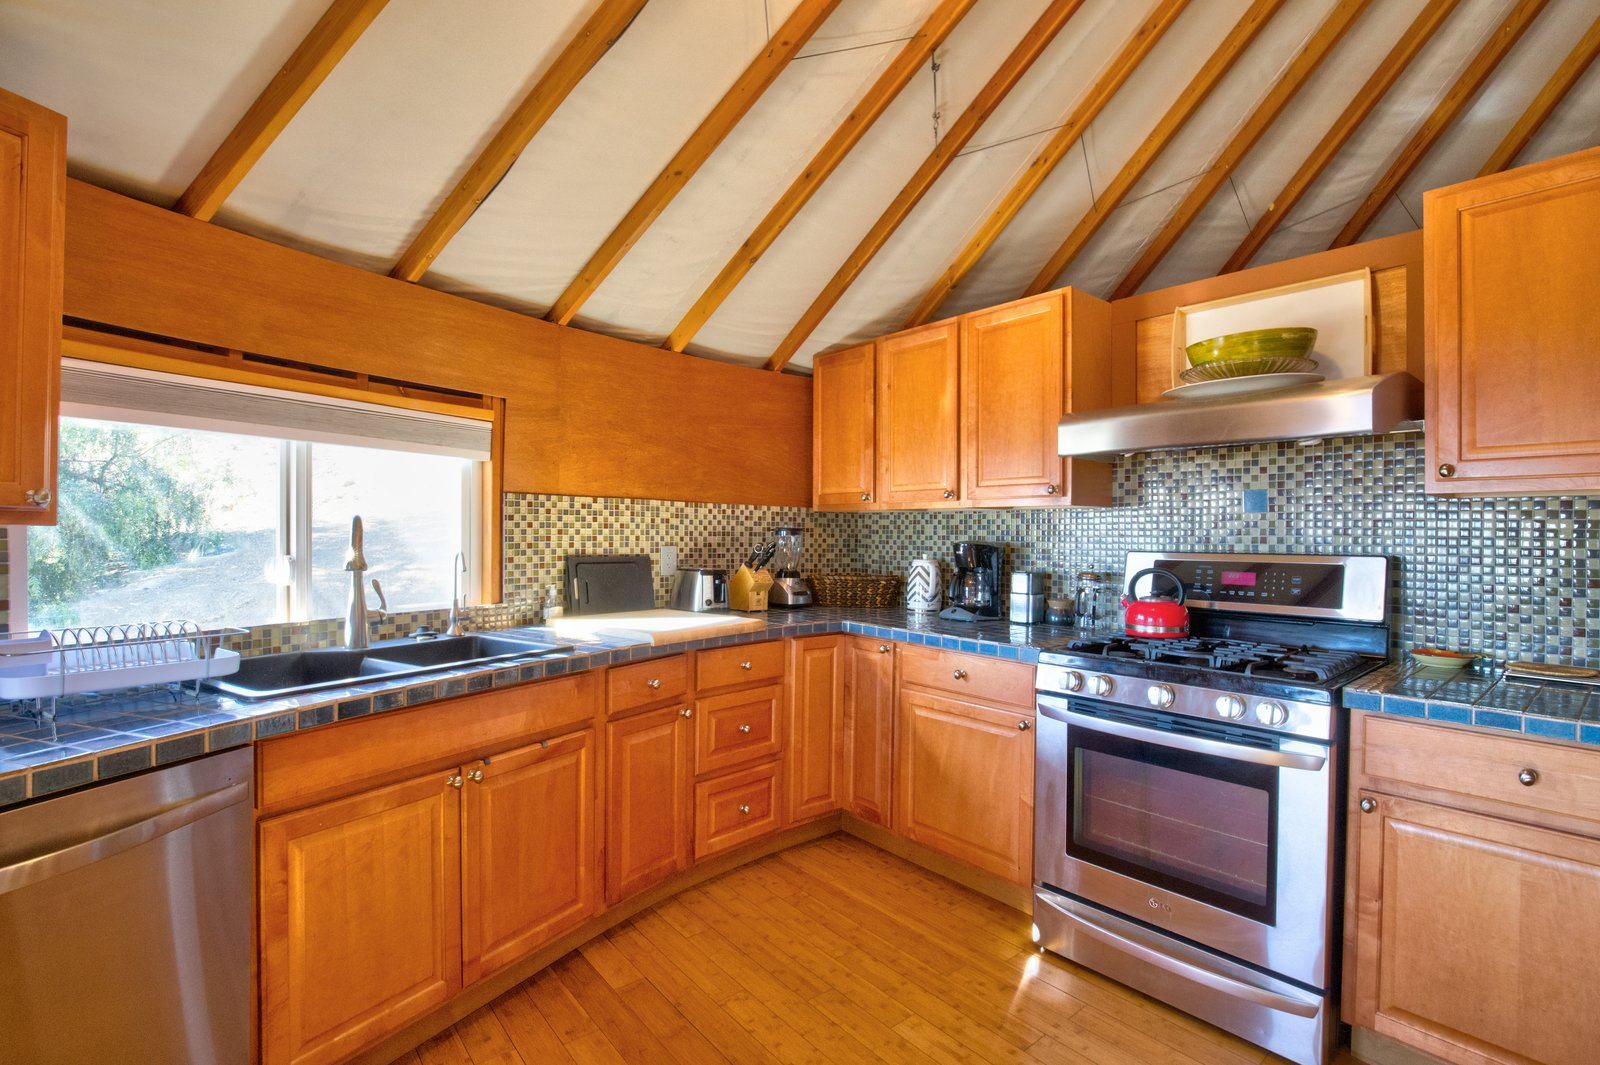 Kitchen, Drop In Sink, Range, Tile Counter, Mosaic Tile Backsplashe, Medium Hardwood Floor, Wood Cabinet, Wall Oven, and Range Hood The roomy kitchen offers all the comforts of home.  Photo 6 of 10 in This Santa Barbara Yurt Is the Ultimate Place to Recharge